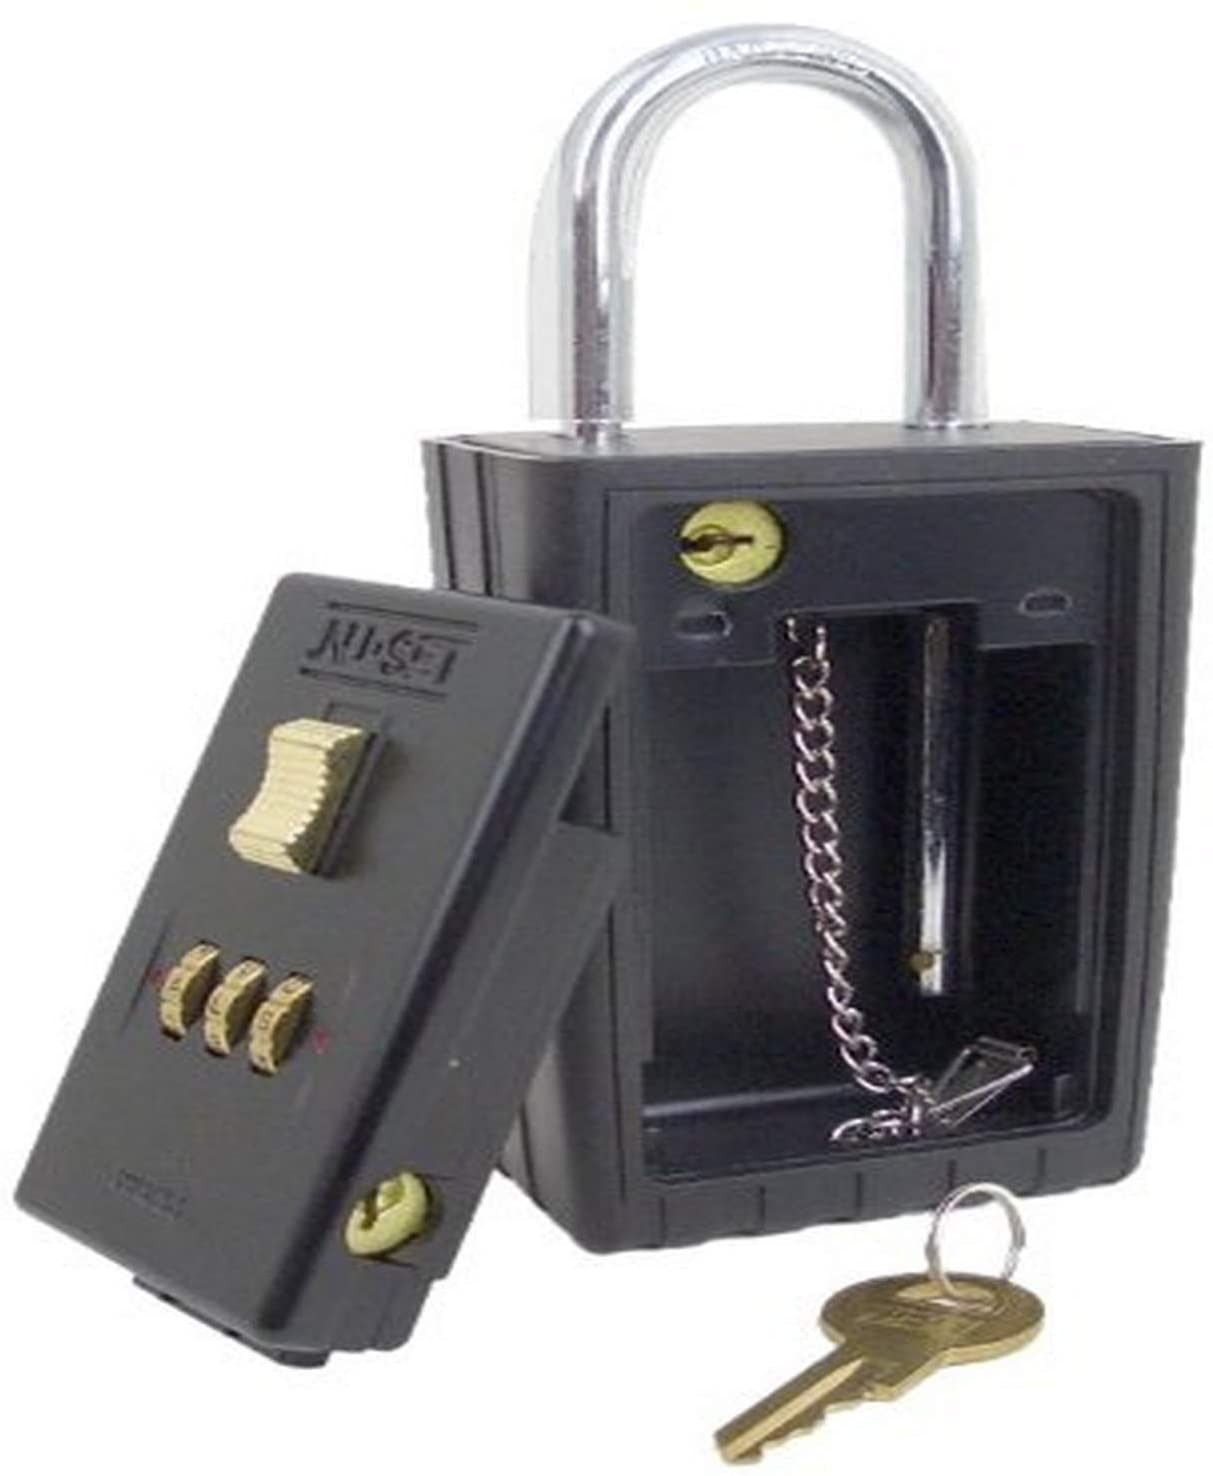 NU-SET 2021S-3 3-Letter Combination Lock Box with Keyed Shackle and Self Scramble Dials